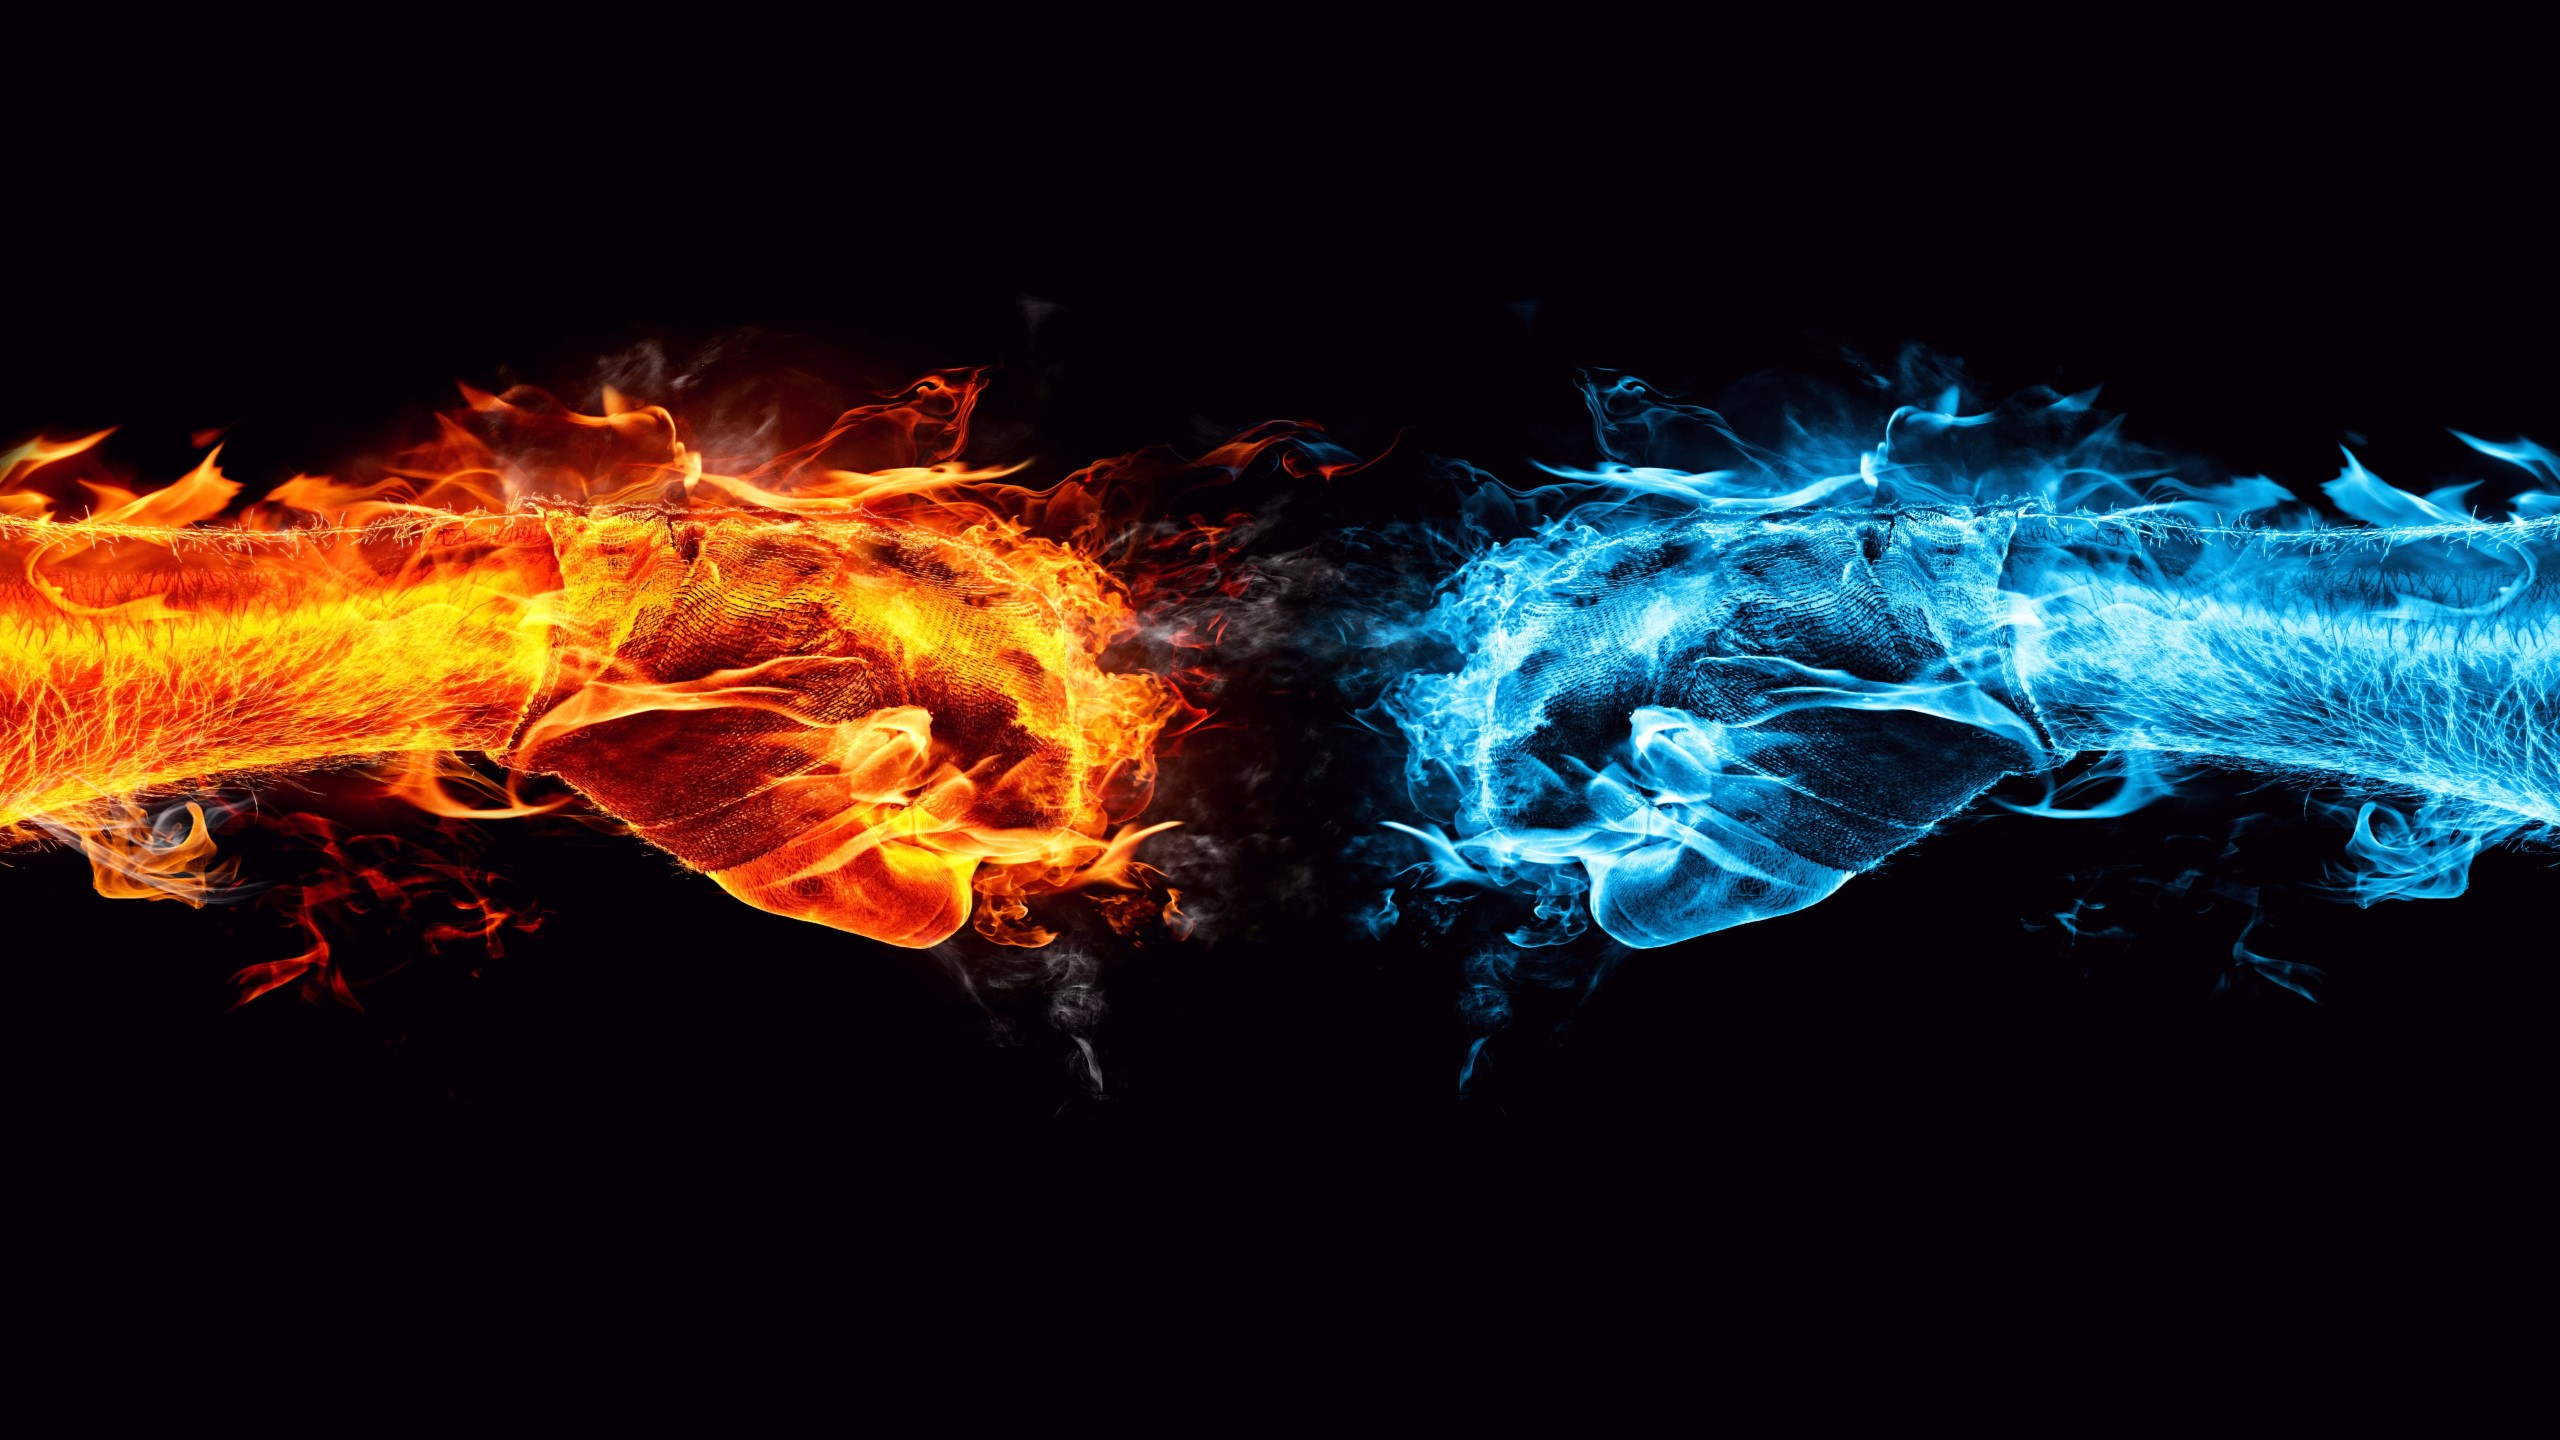 Ice and fire awesome 2560x1440